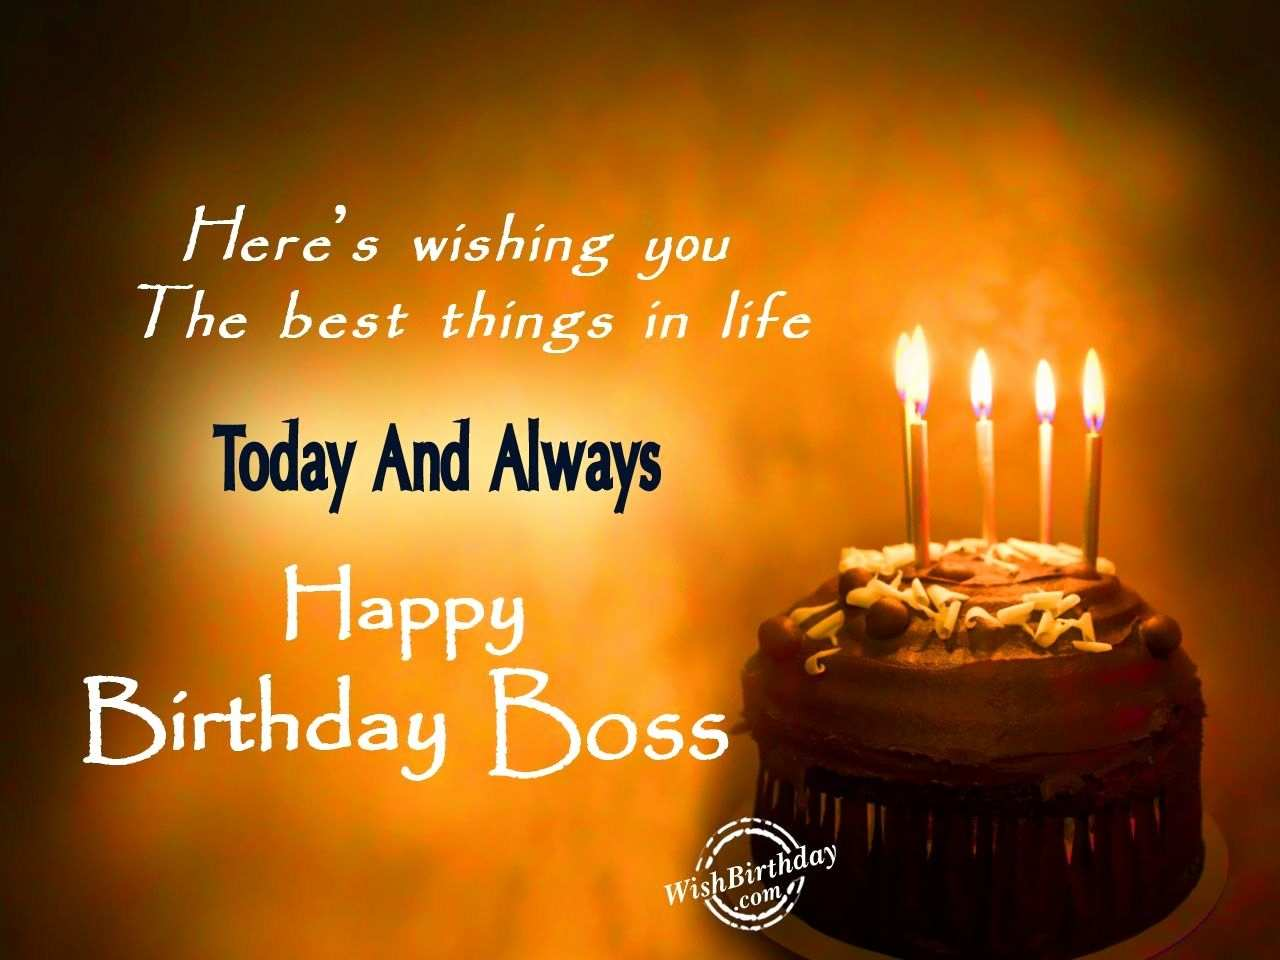 nice birthday message for boss ; funny-birthday-wishes-for-boss-awesome-happy-birthday-wishes-boss-sms-new-code-url-azbirthdaywishes-of-funny-birthday-wishes-for-boss